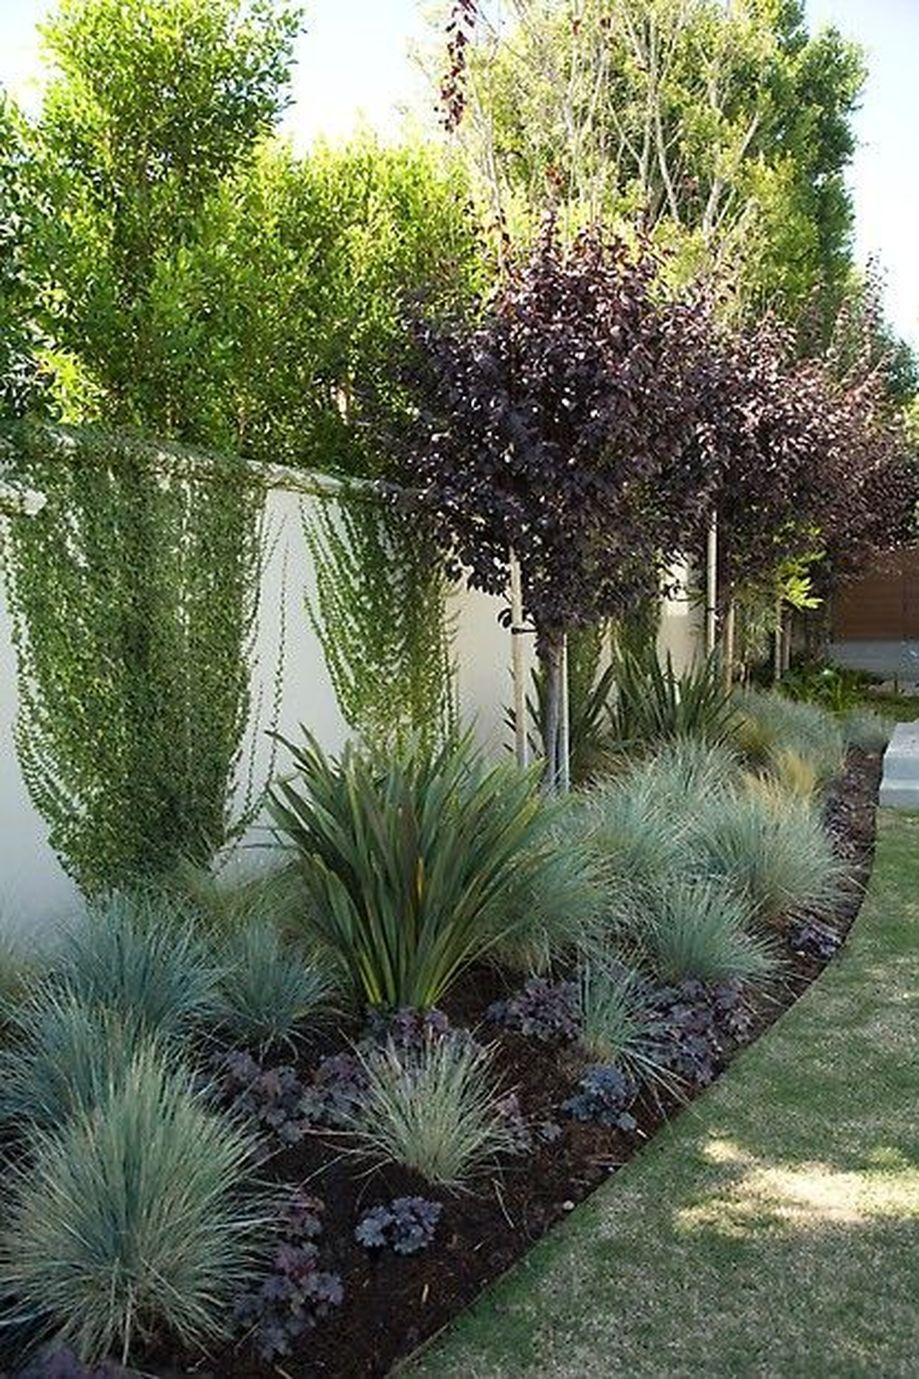 Stunning Privacy Fence Line Landscaping Ideas Landscapingideas Backyard Landscaping Designs Backyard Landscaping Easy Landscaping